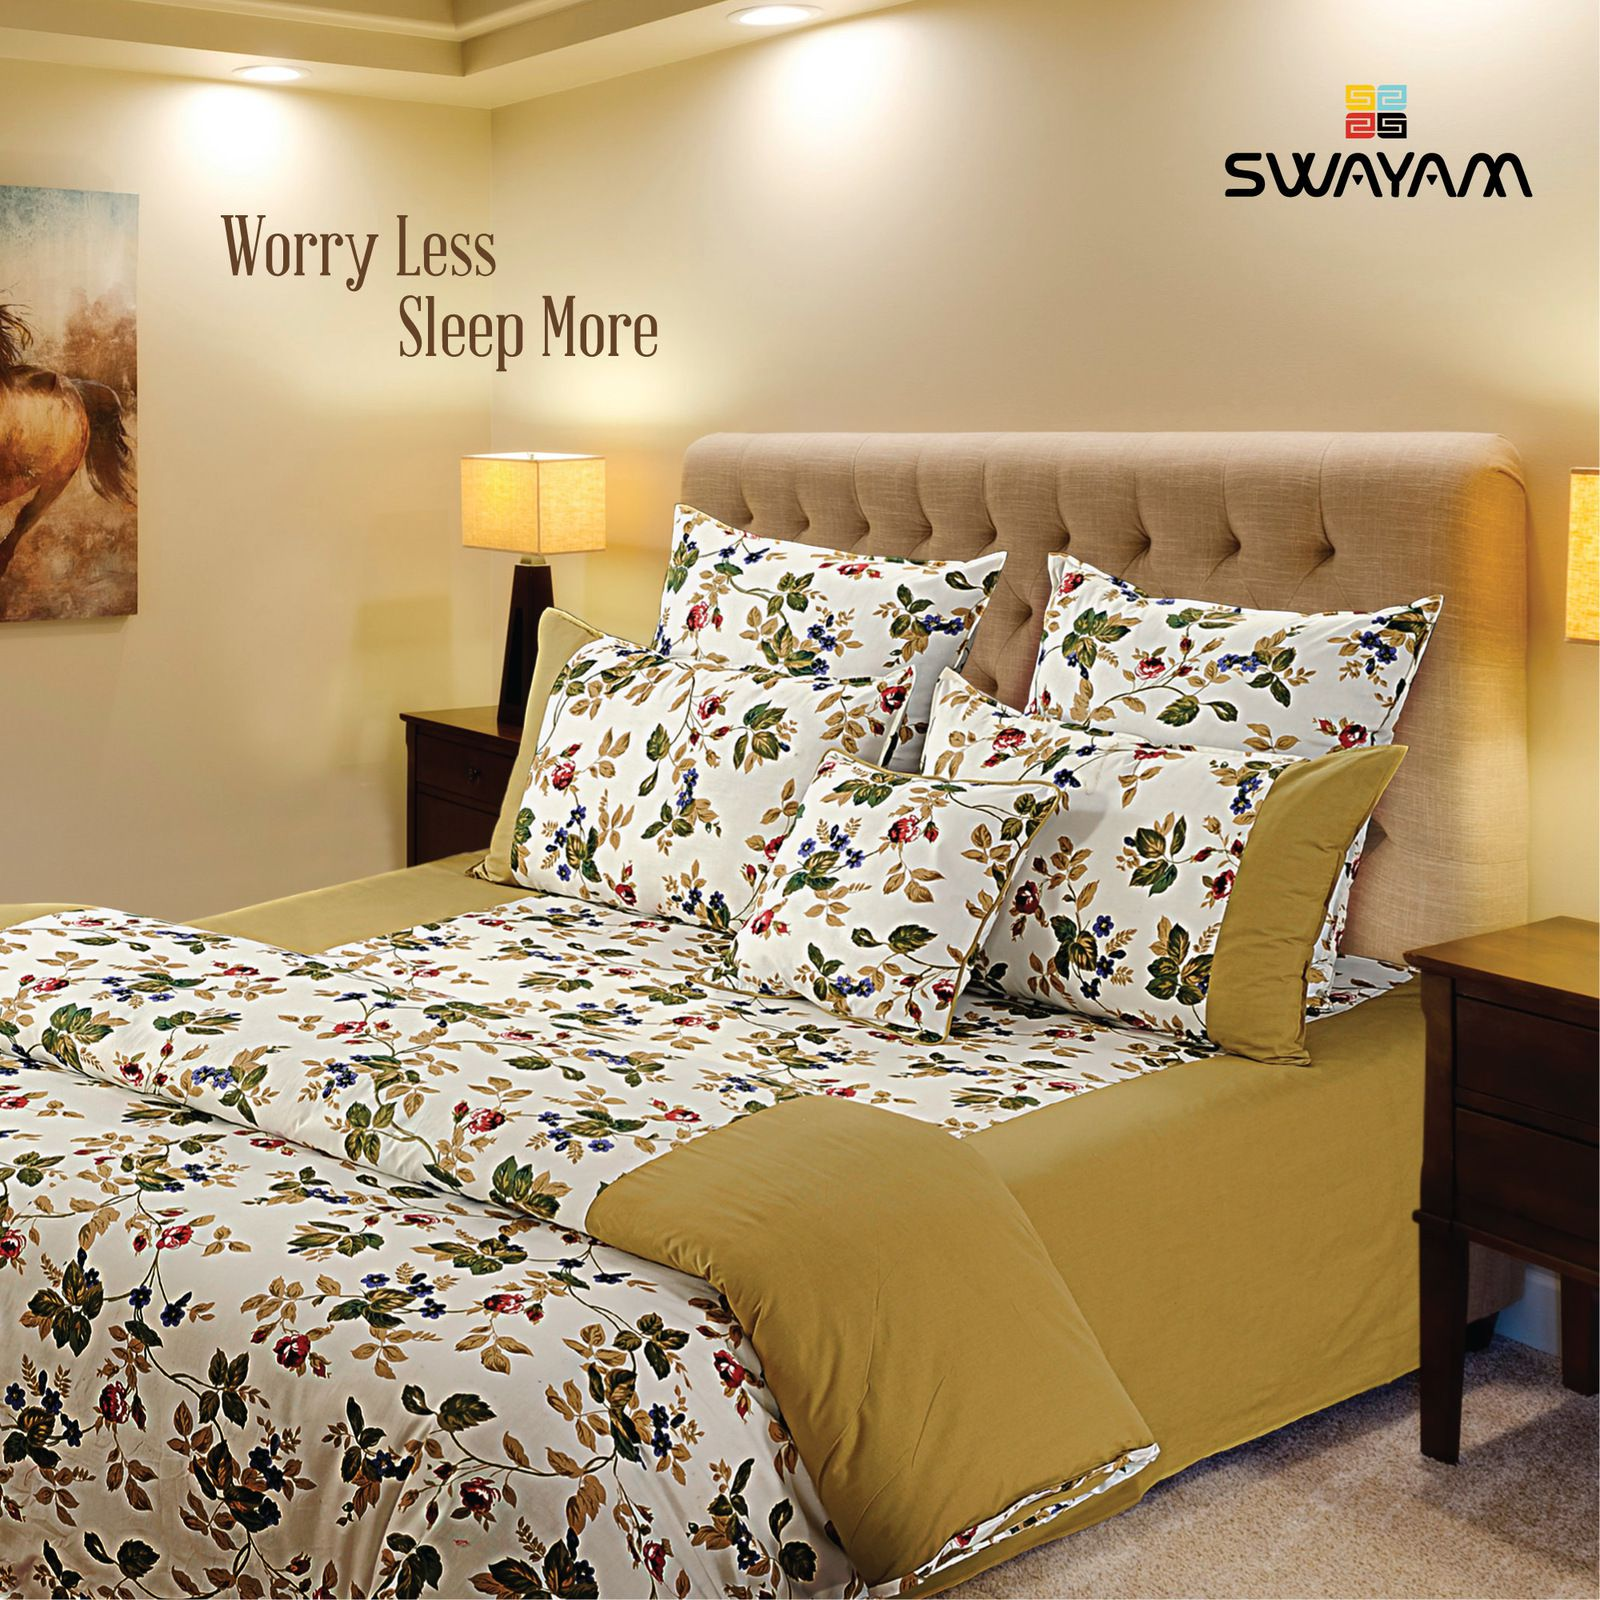 How Bed Sheets Impact Your Bedroom Interiors?